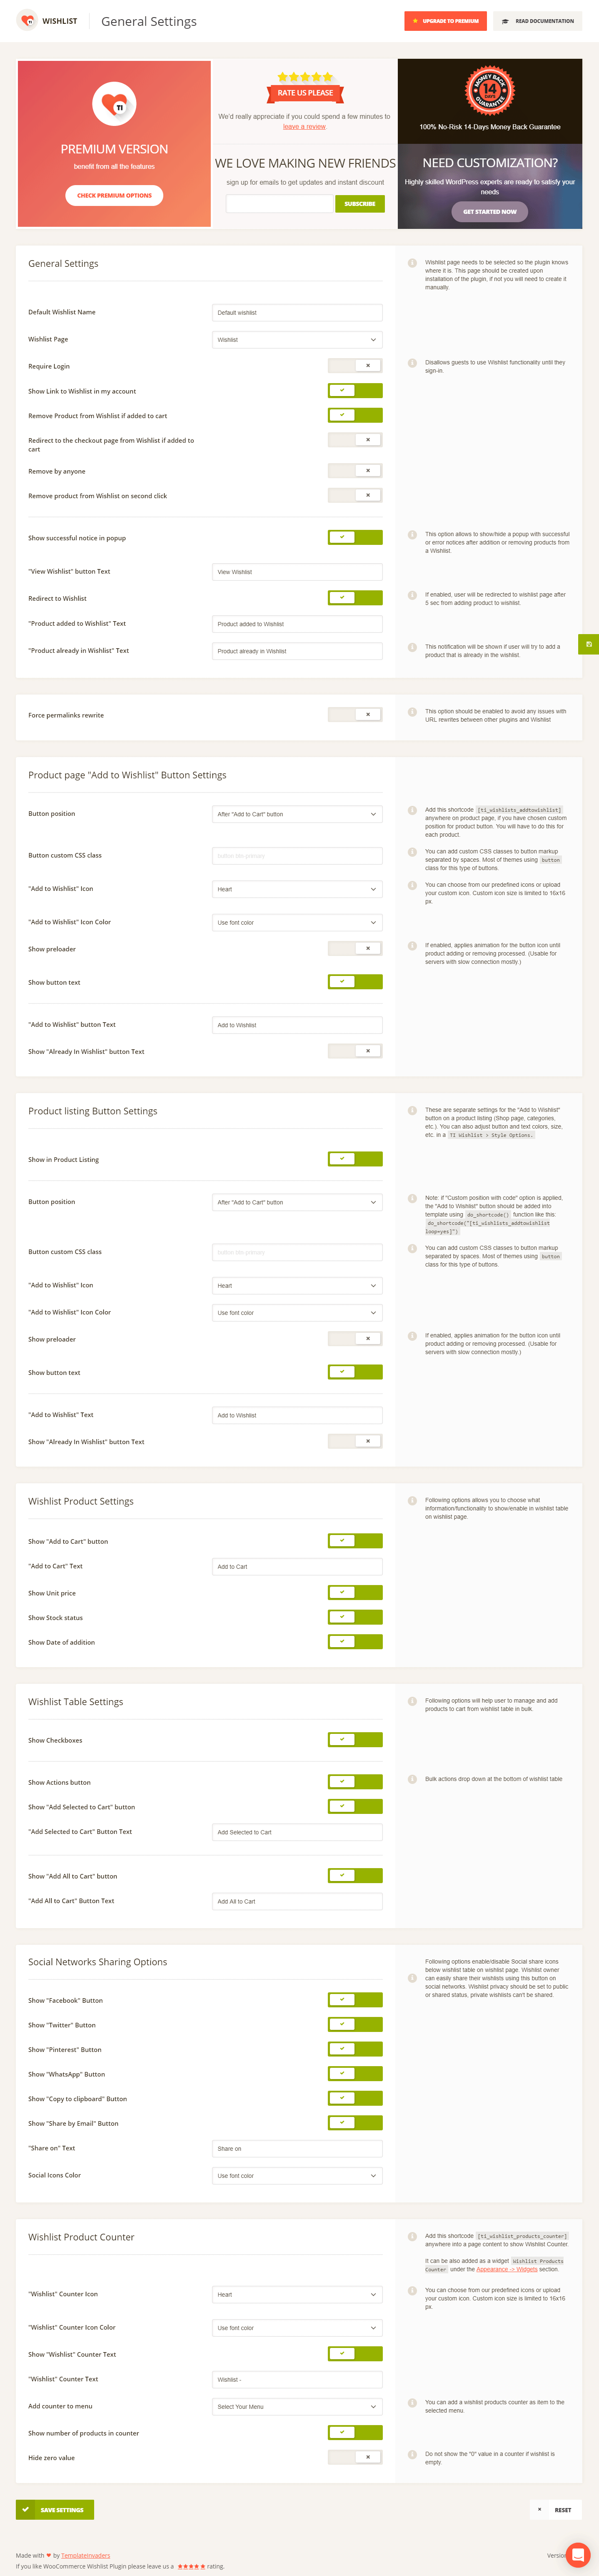 Wishlist Settings page